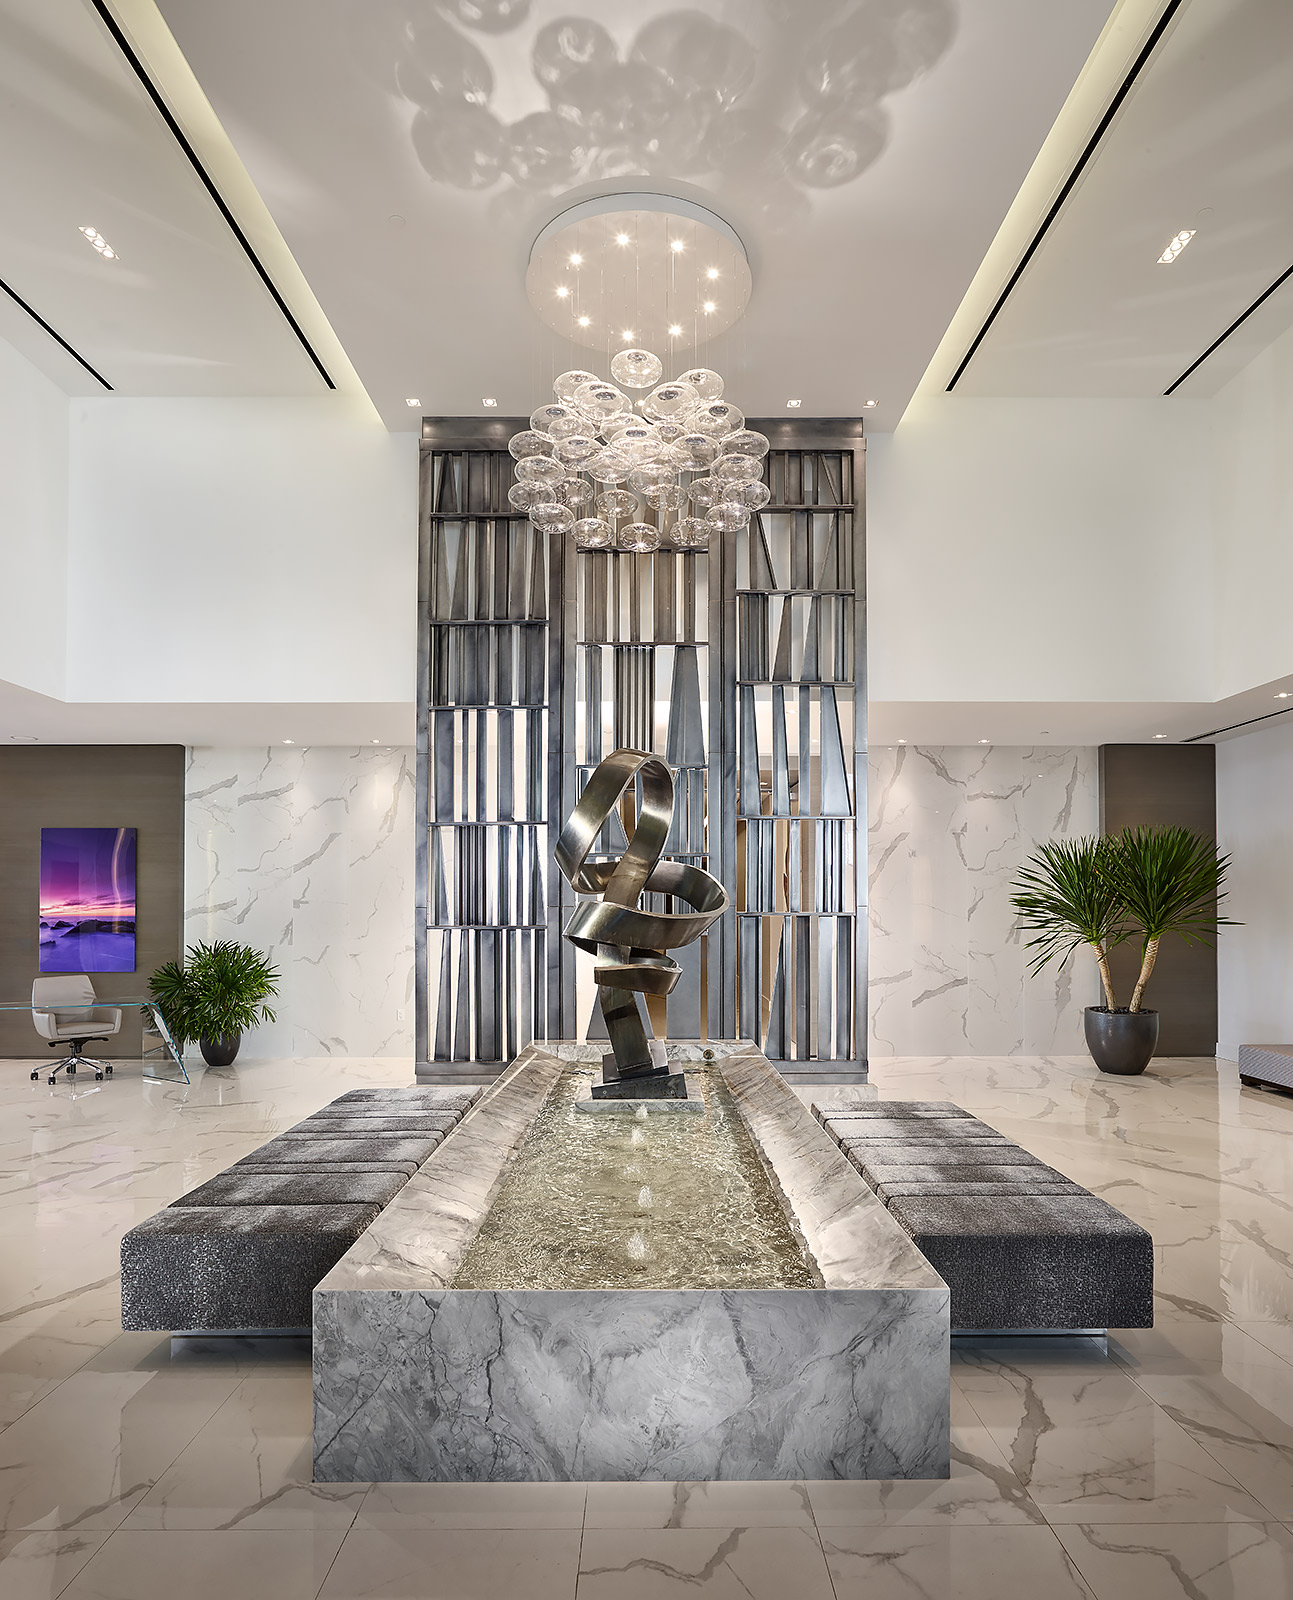 Architectural-Interior-Design-Lobby-Modern-Sculpture